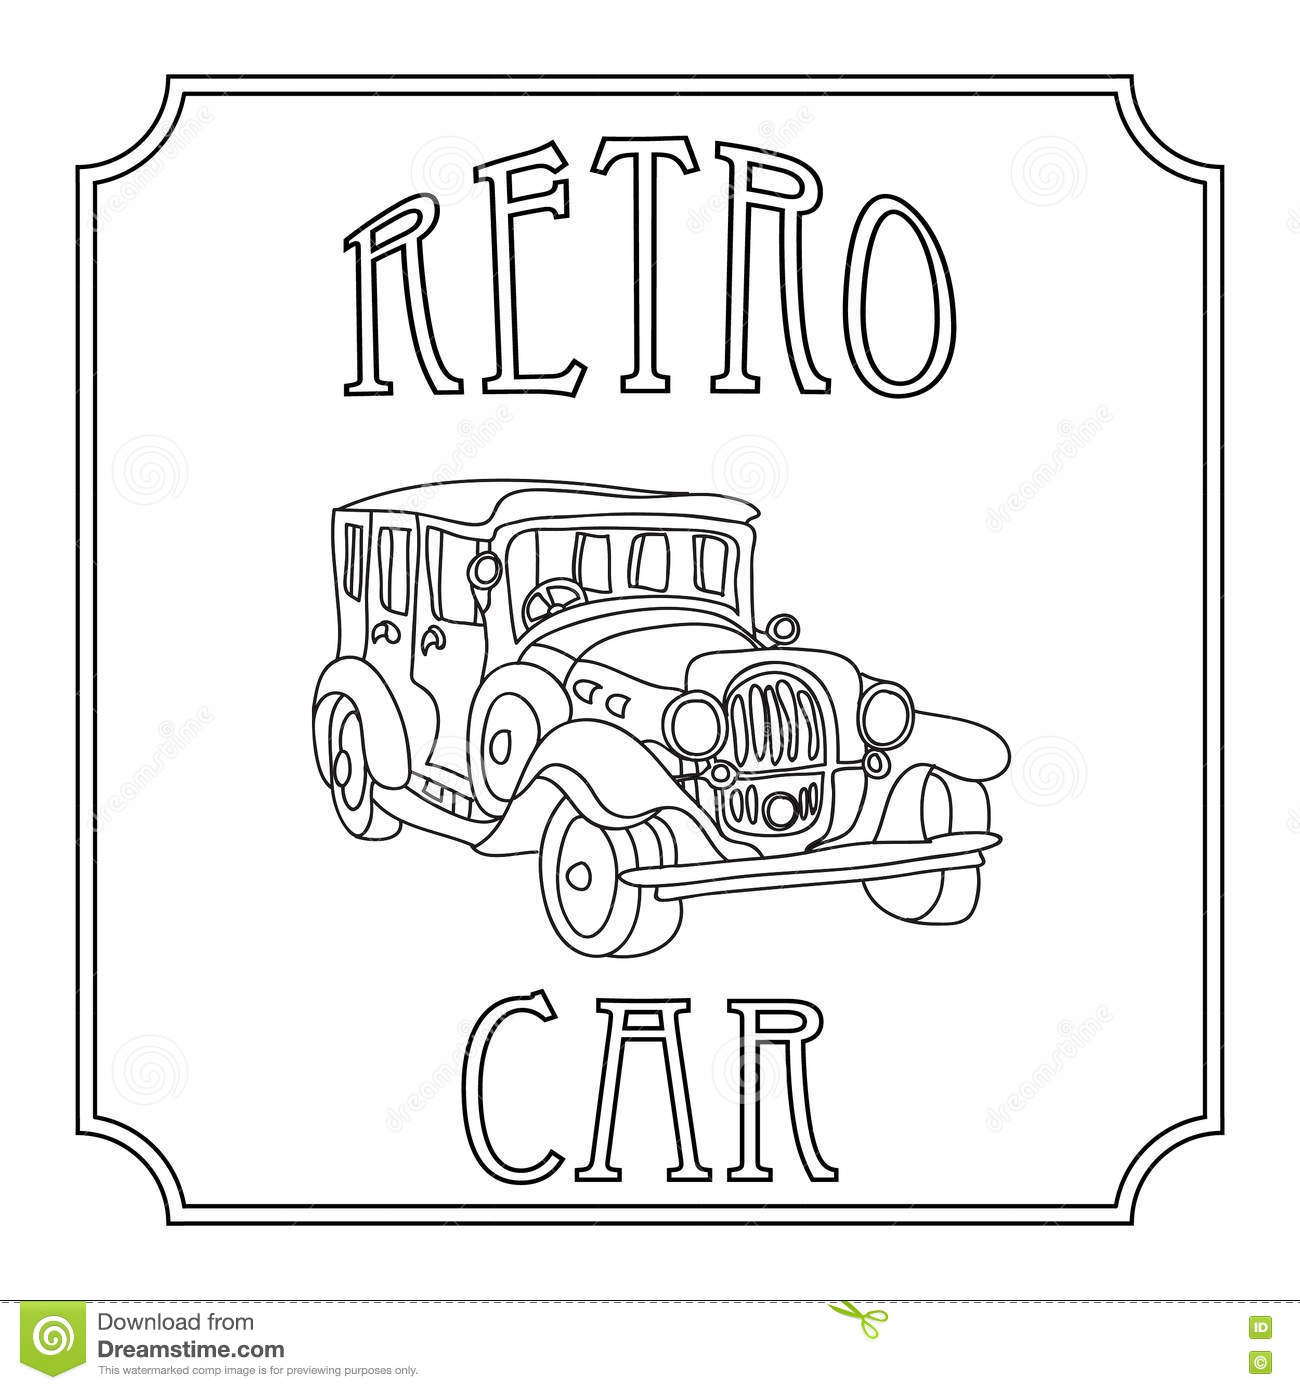 Coloring for adults cars - Coloring Pages For Adults Vintage Cars Retro Vintage Cars Coloring Page Isolated On White